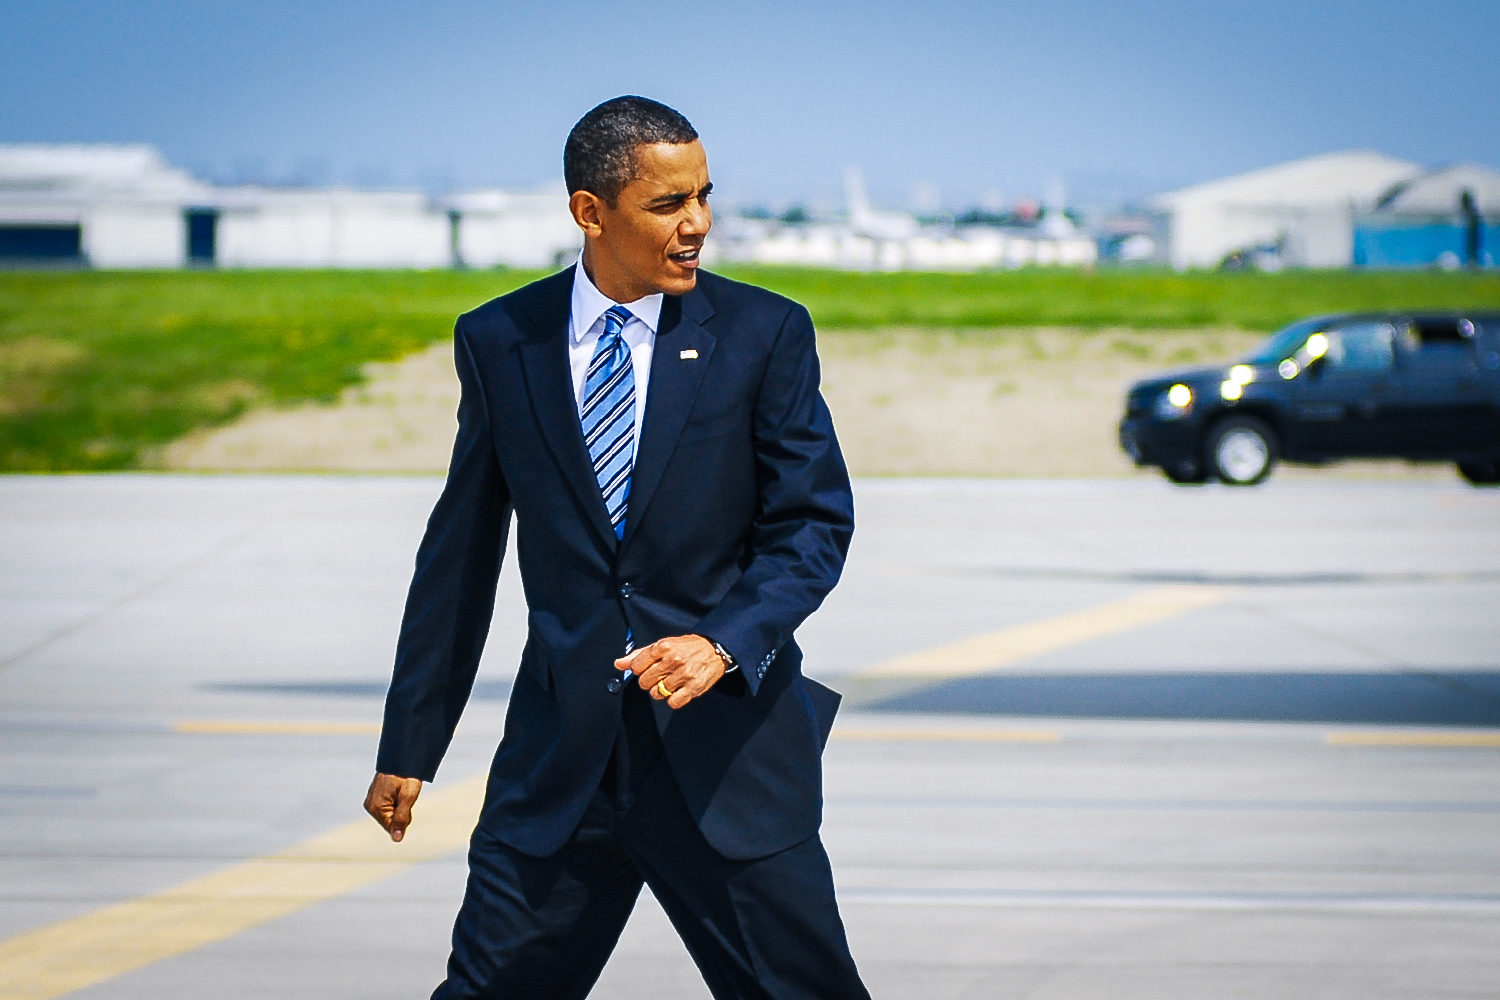 U.S. President Barack Obama arrives at Toronto International Airport for the G8 G20 Summitt. Toronto, June 25, 2010.